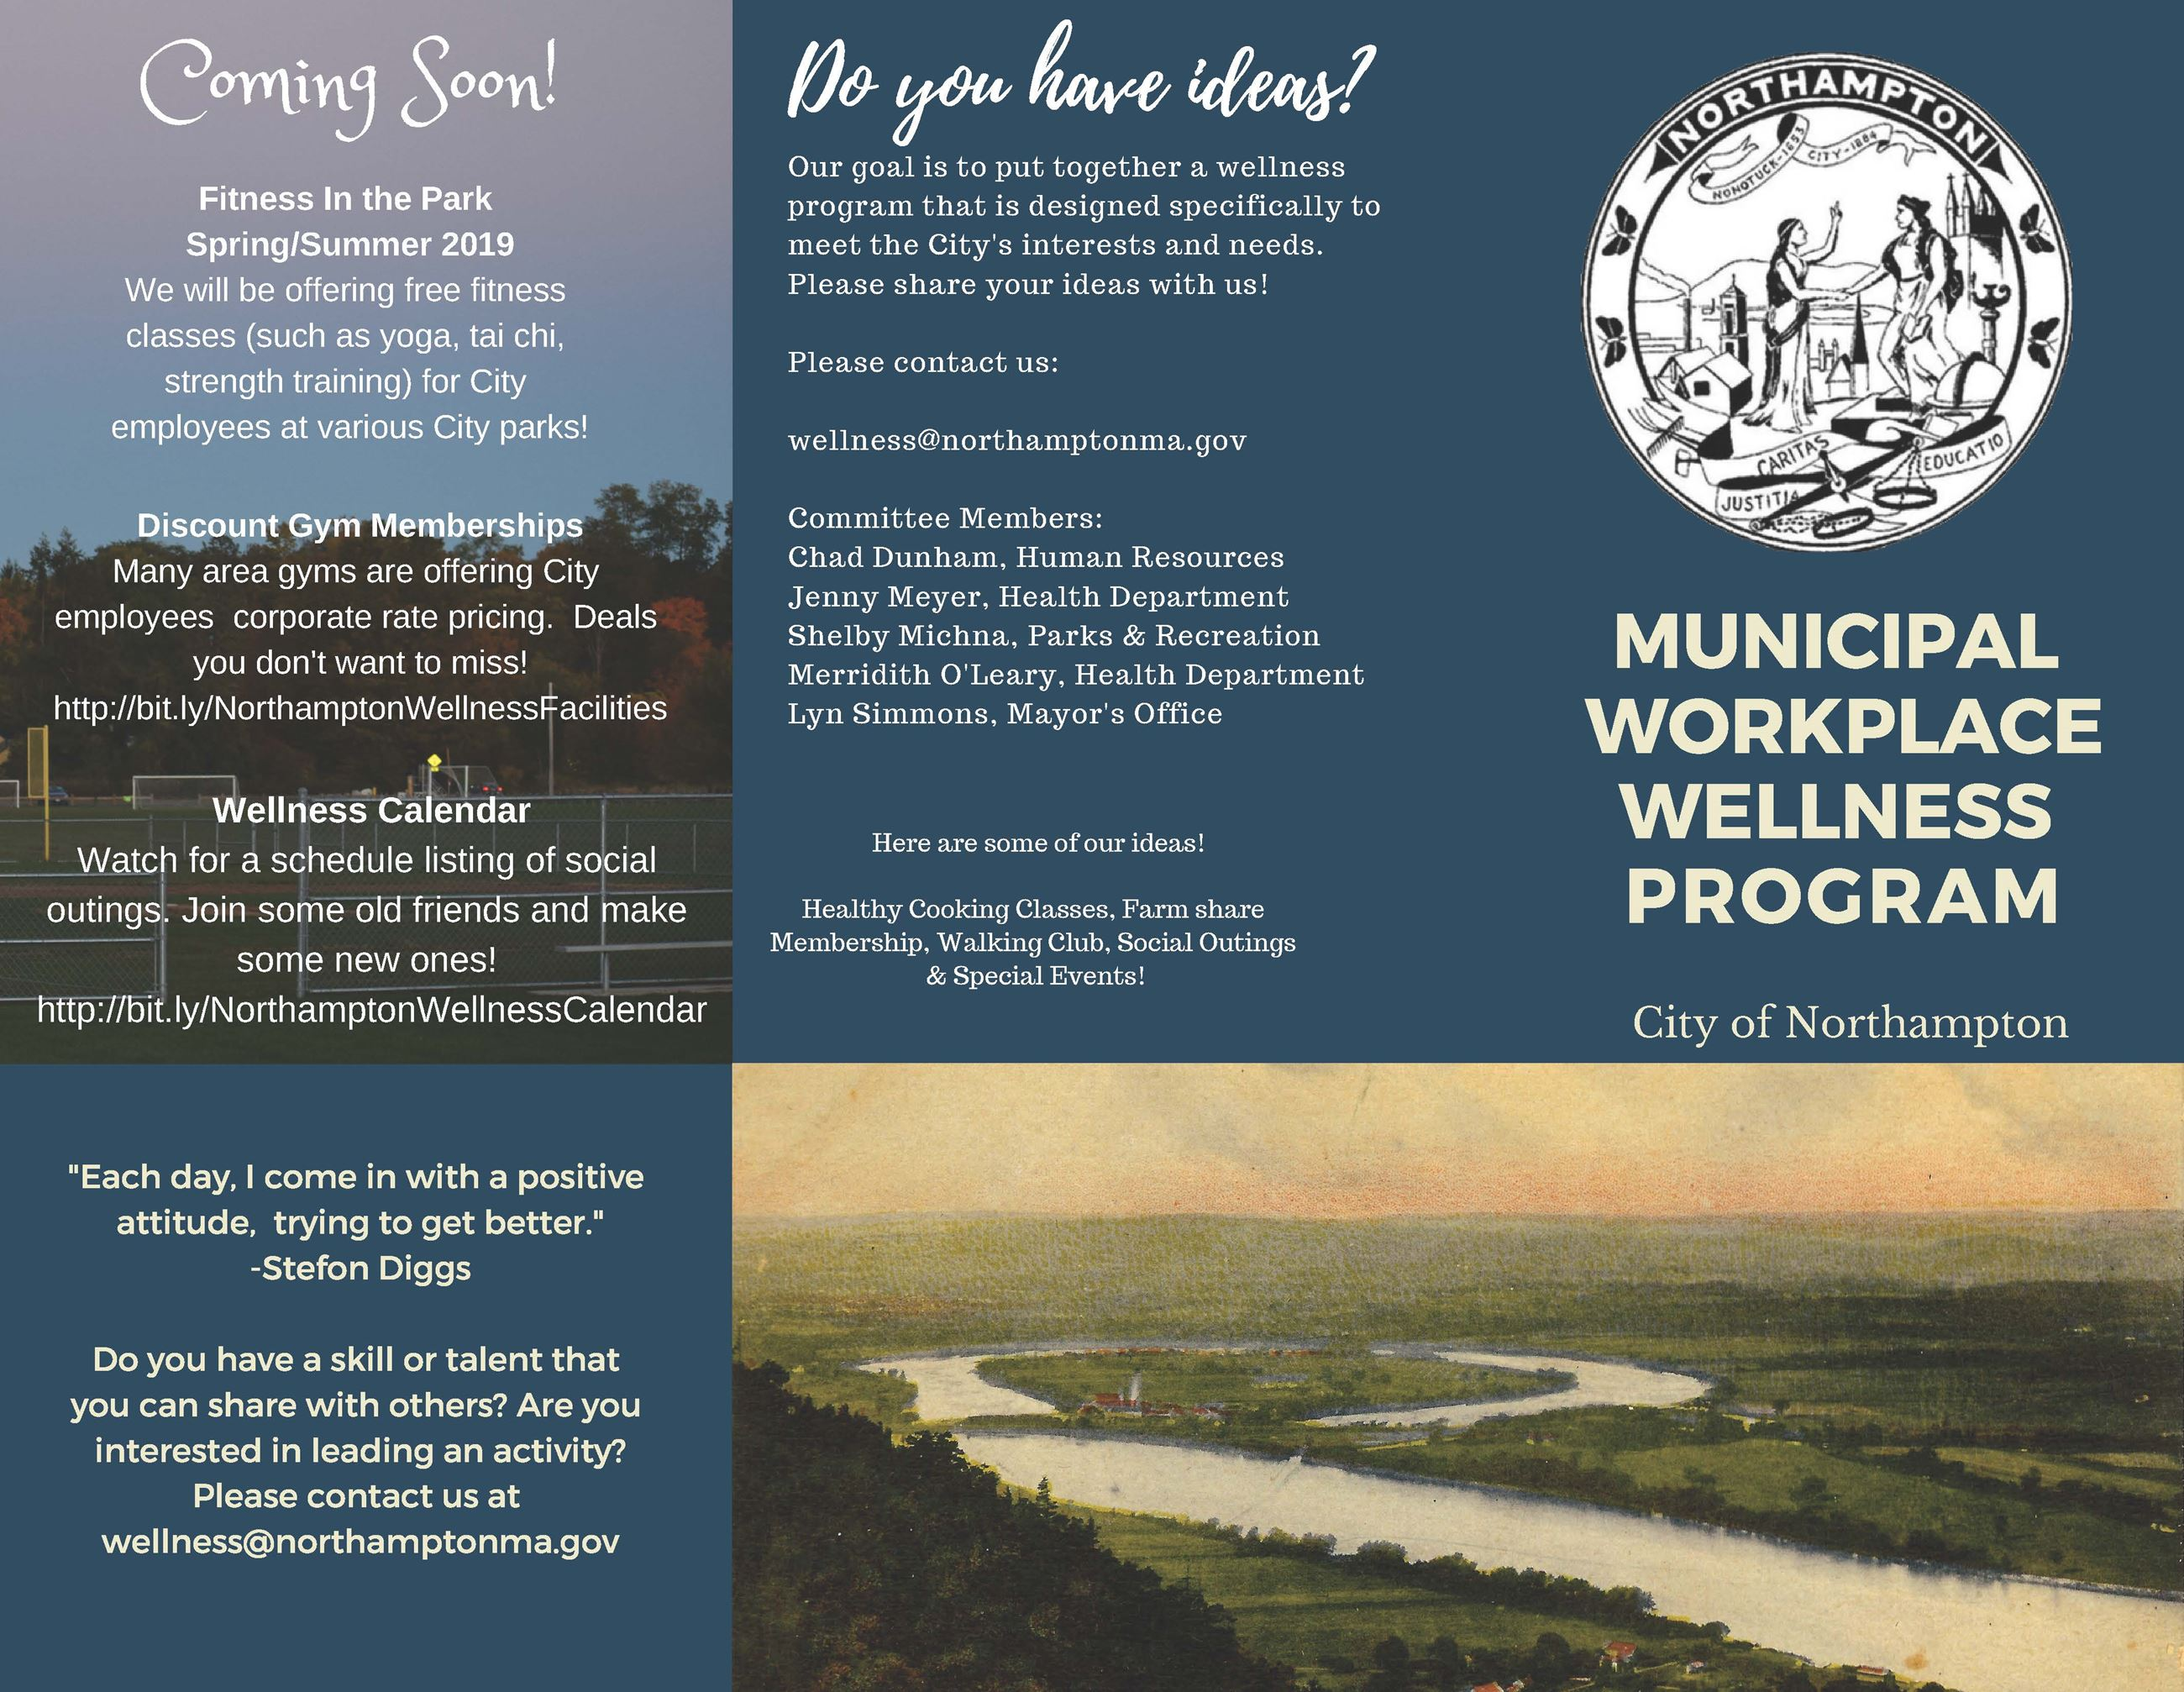 City wellness brochure_Page_1